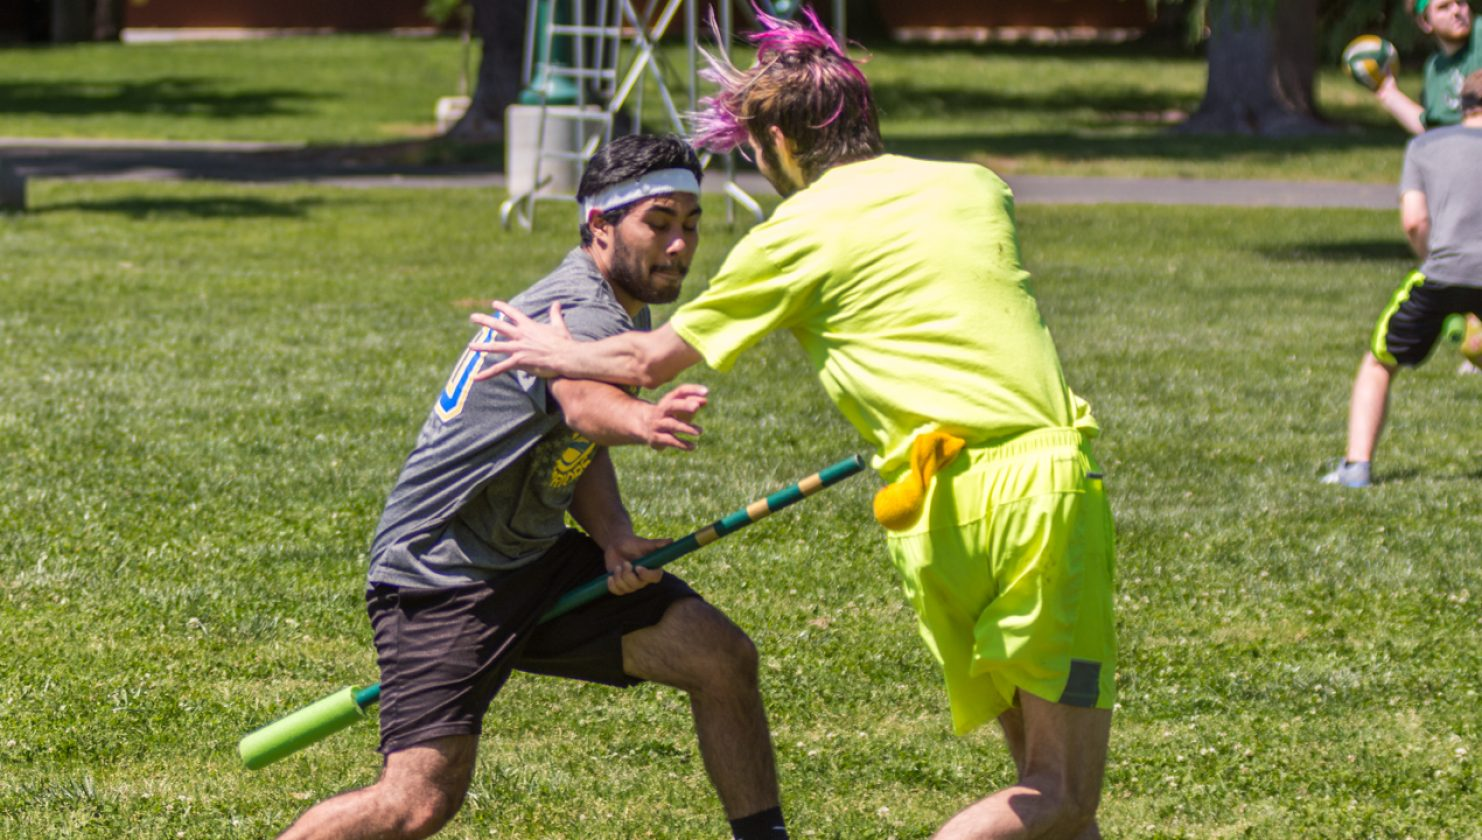 Junior history major Gabe Garcia tries to get the snitch from the snitch runner, Nate. During this practice, the club was short two members so they played with no seekers. (Photo by Matthew Dyer)